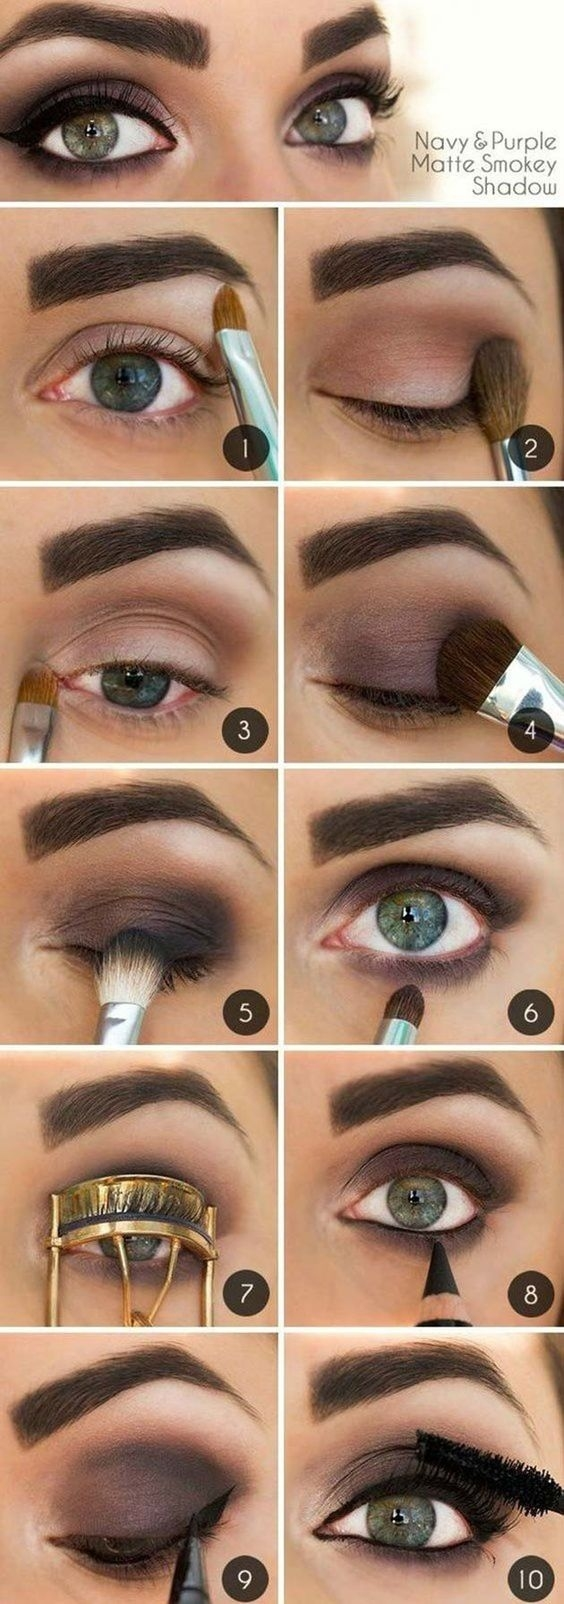 10 Step By Step Makeup Tutorials For Green Eyes - Her Style Code with What Color Eyeshadow For Green Eyes